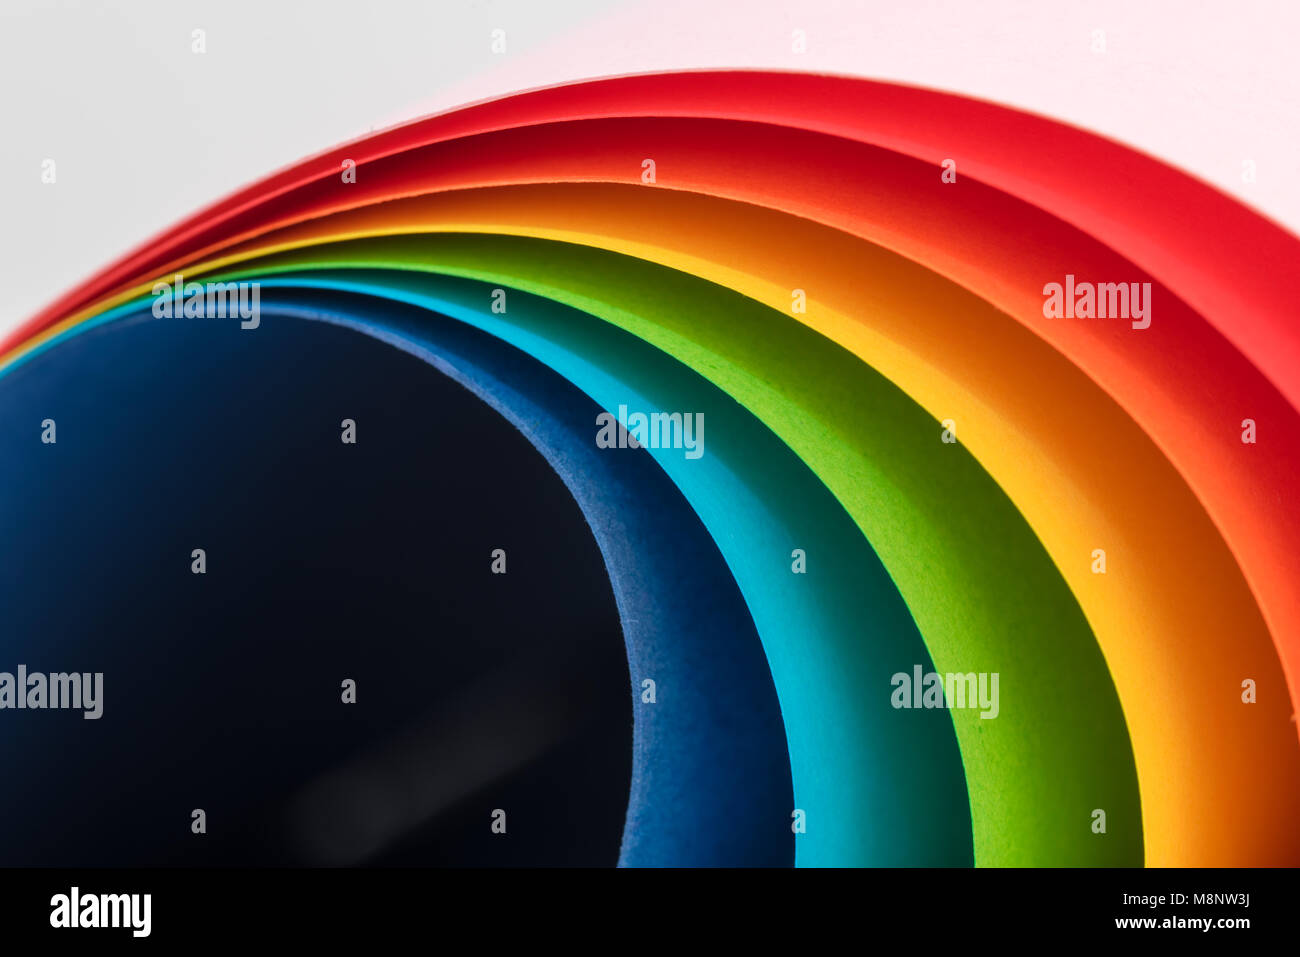 Rainbow of sheets of coloured card forming a gentle curve - Stock Image